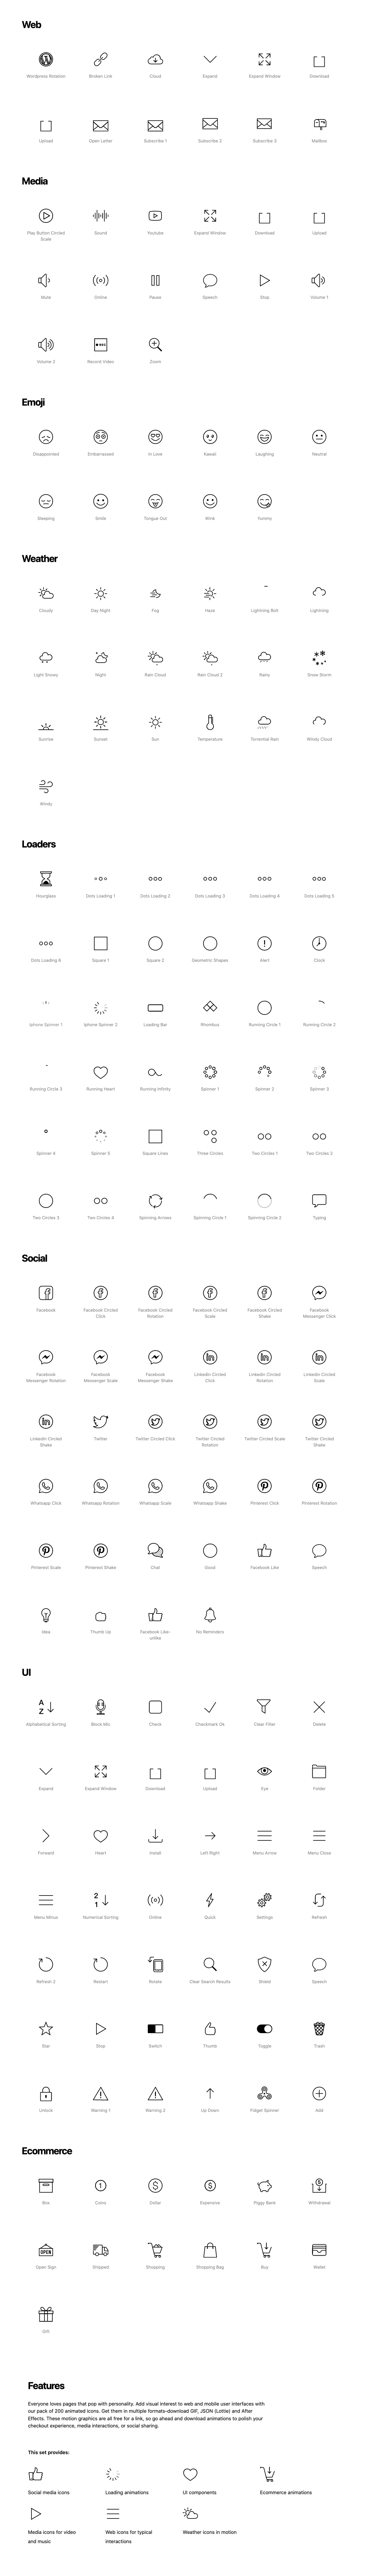 Animated Icons - 200 Free Icons - Add user delight to your site with this free pack of 200+ animated icons in JSON (Lottie), GIF, and After Effects formats.